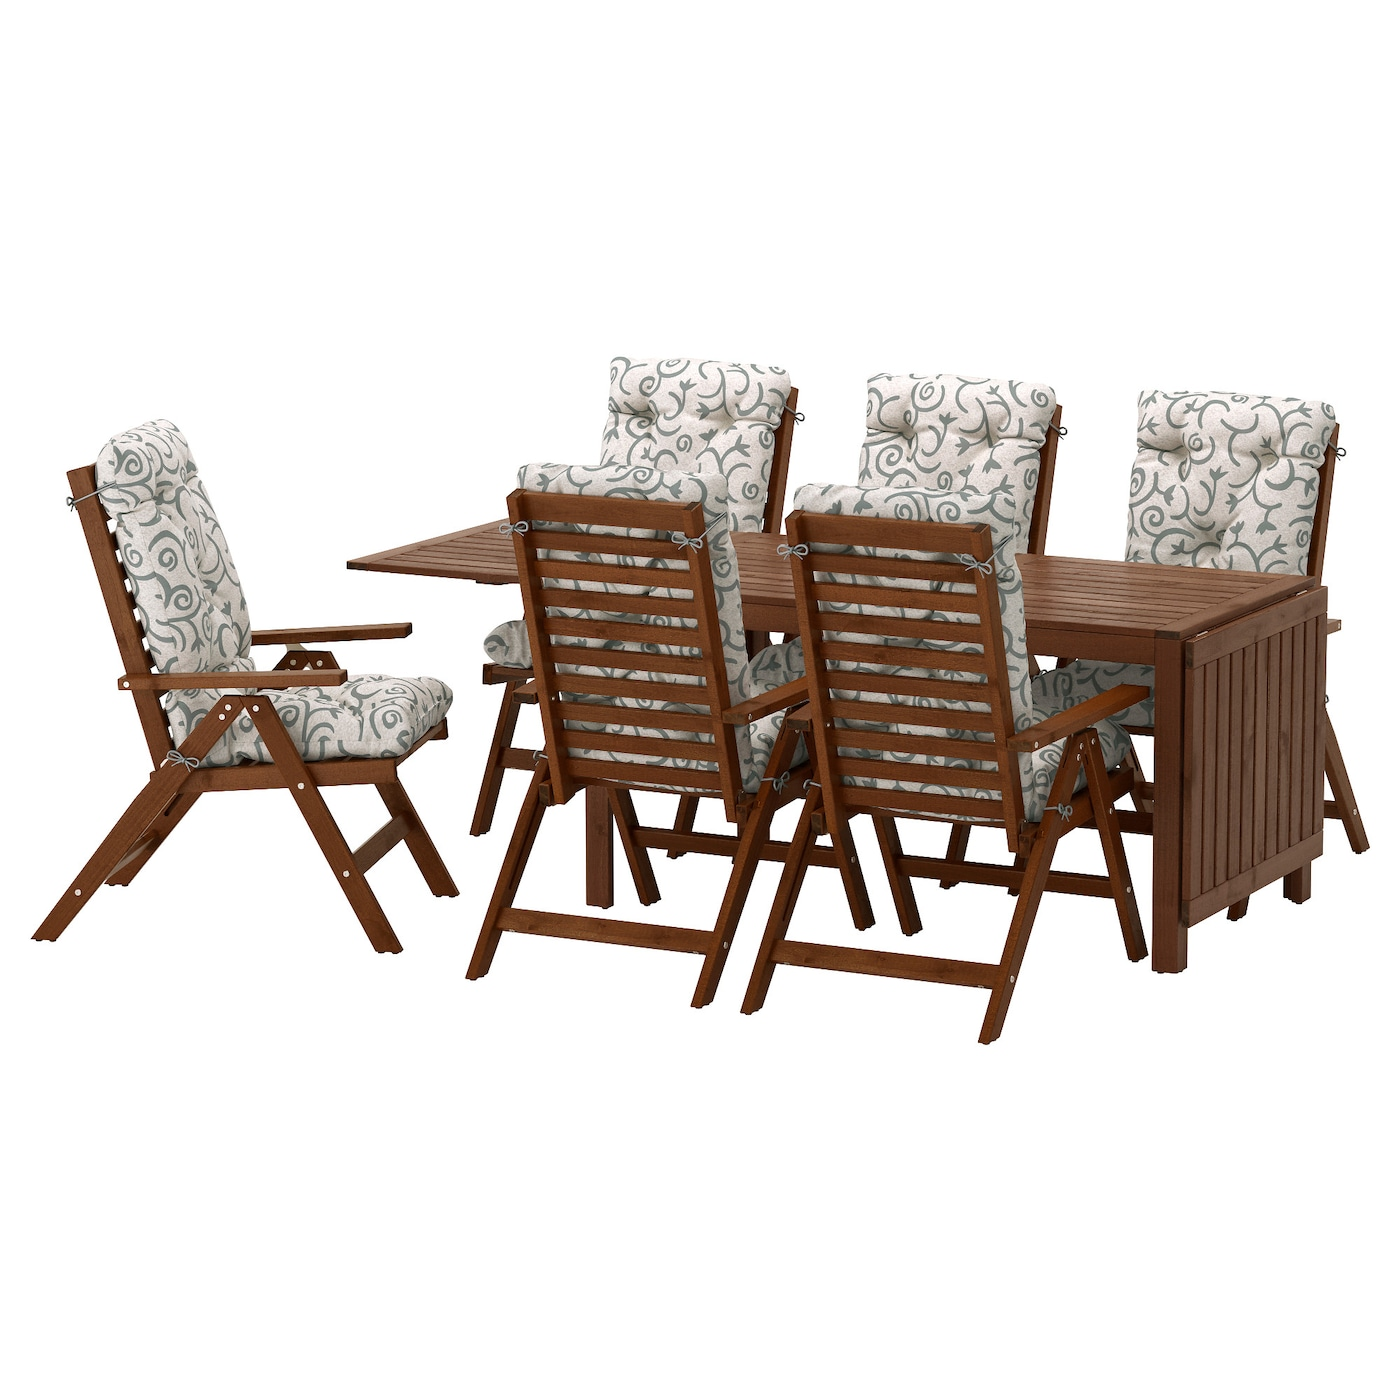 Garden tables chairs garden furniture sets ikea for I furniture outdoor furniture